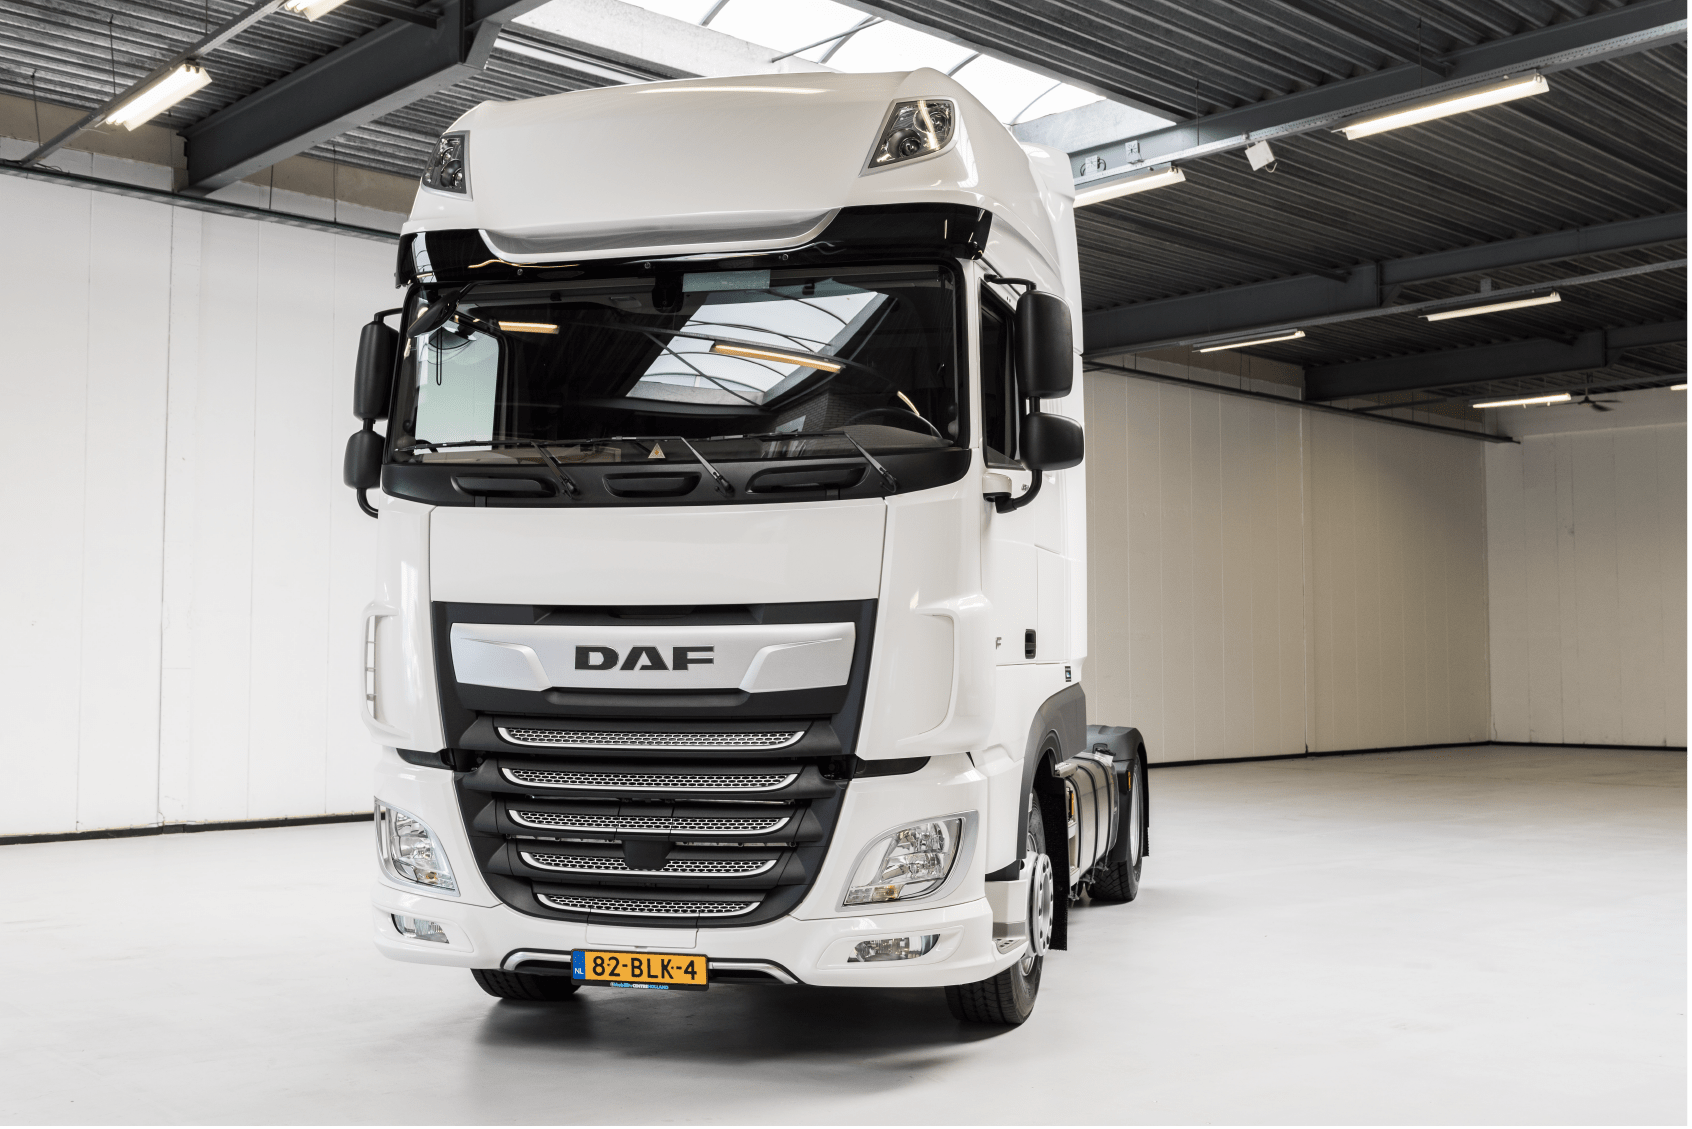 Koop, lease of huur trucks bij Mobility Centre Holland